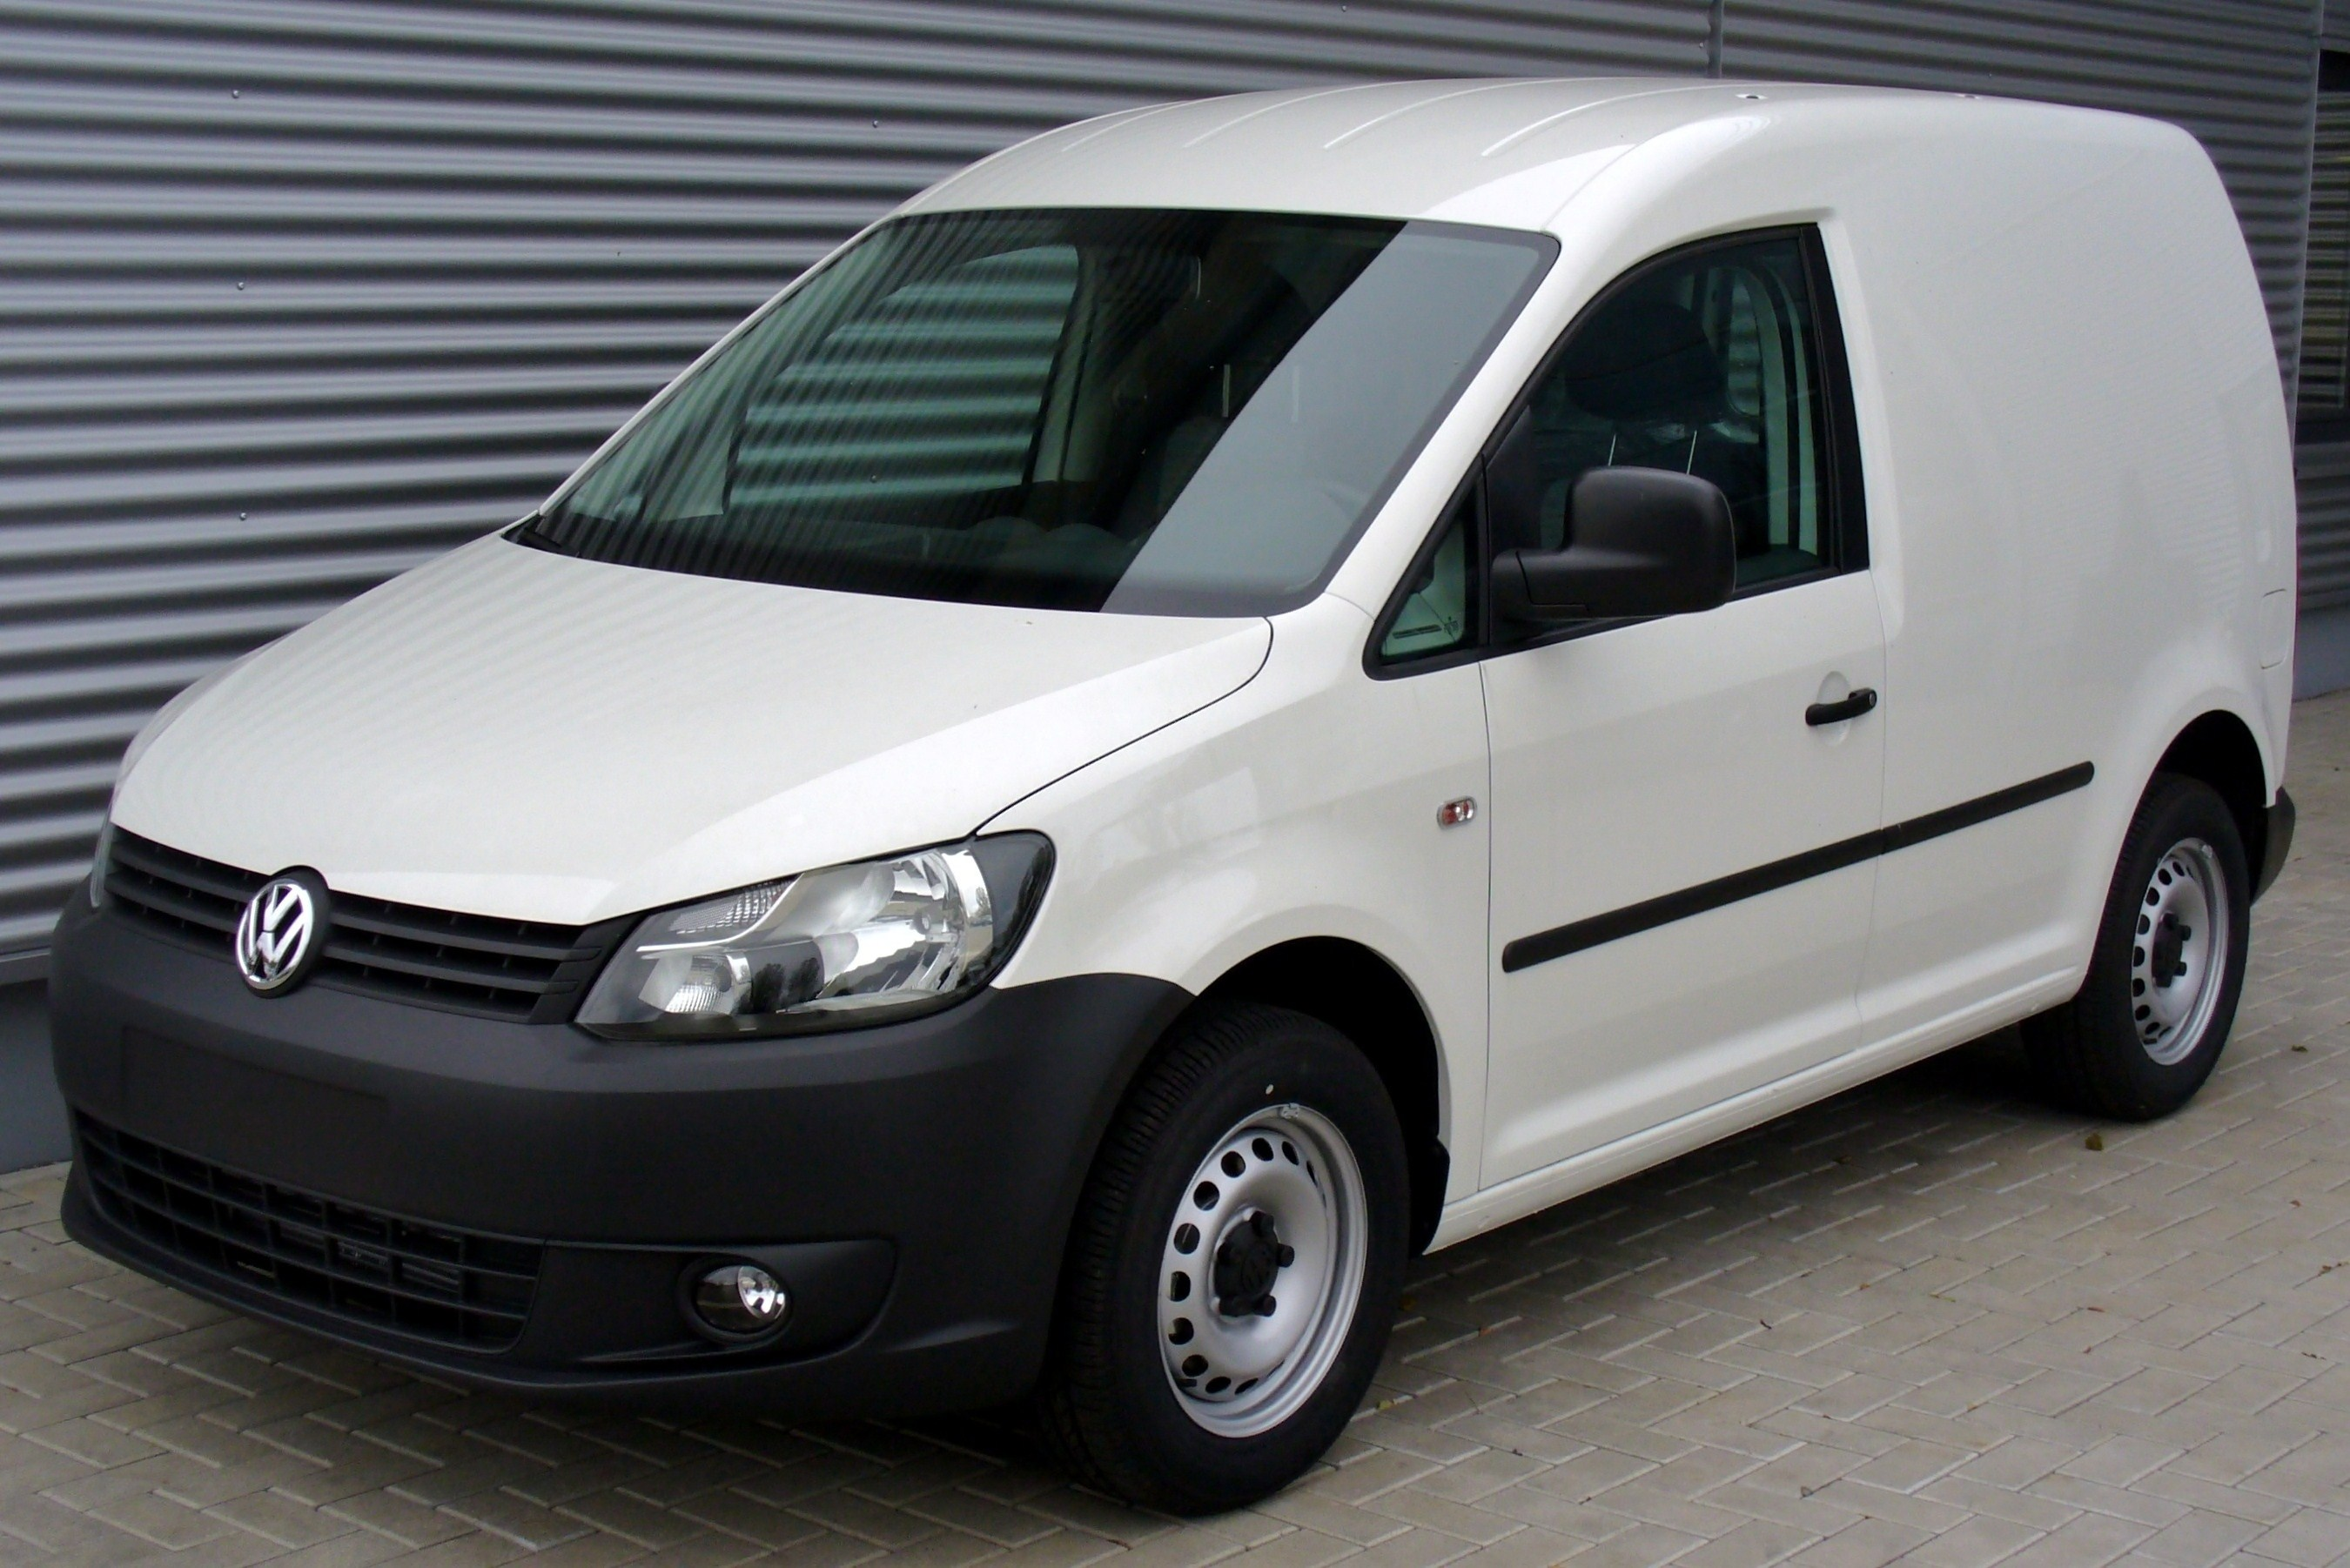 Volkswagen Caddy 1.6 2013 photo - 1